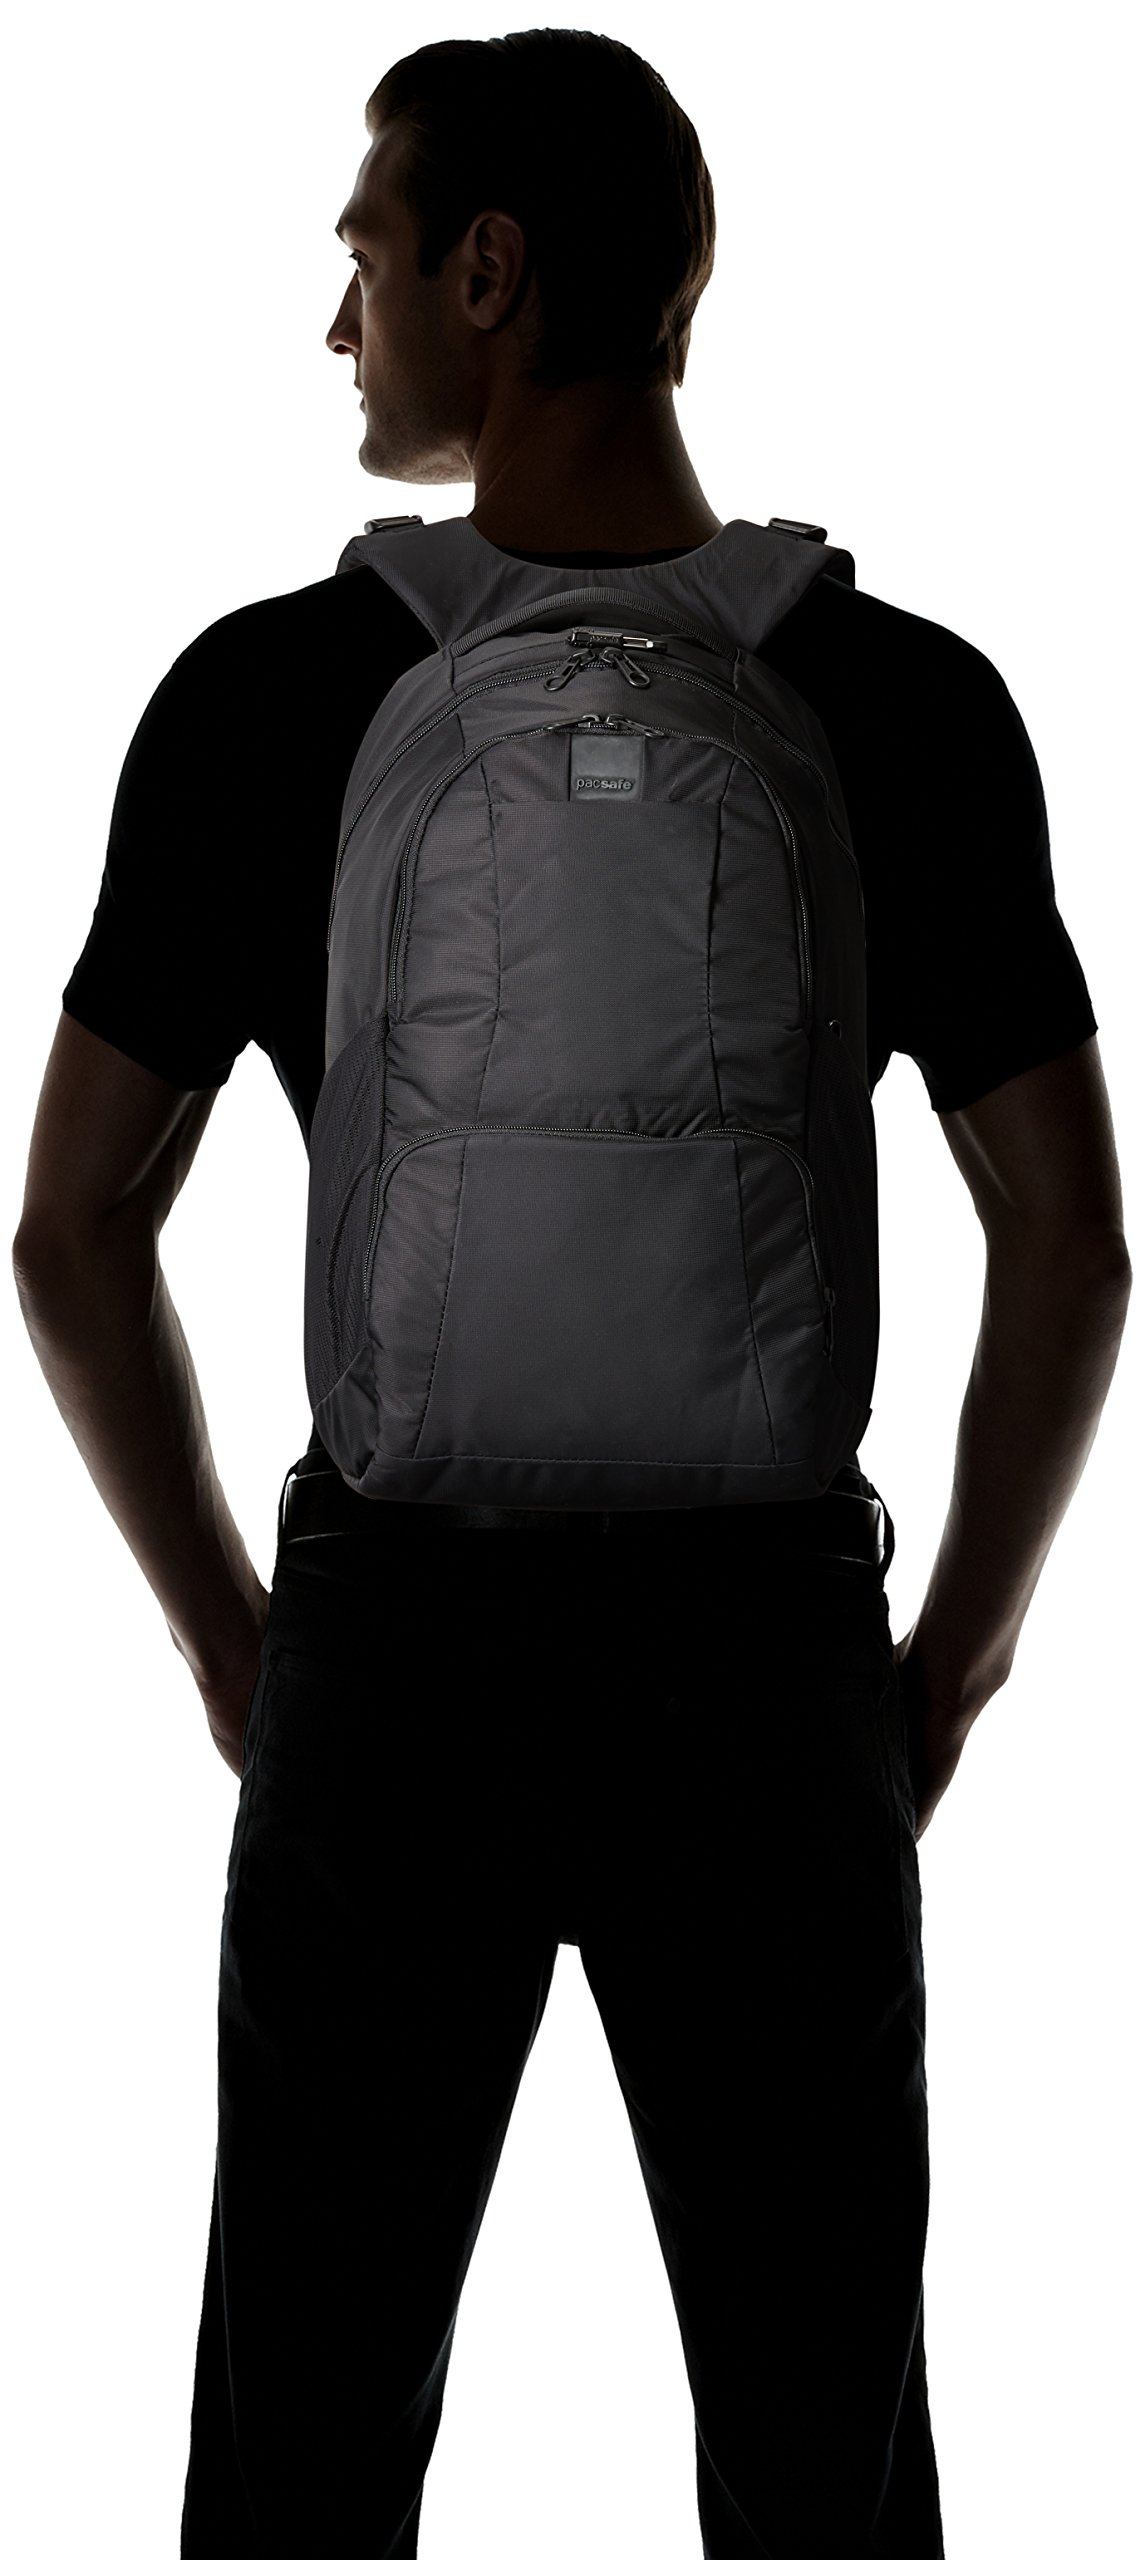 Pacsafe Metrosafe LS450 Anti-Theft 25L Backpack, Black by Pacsafe (Image #7)